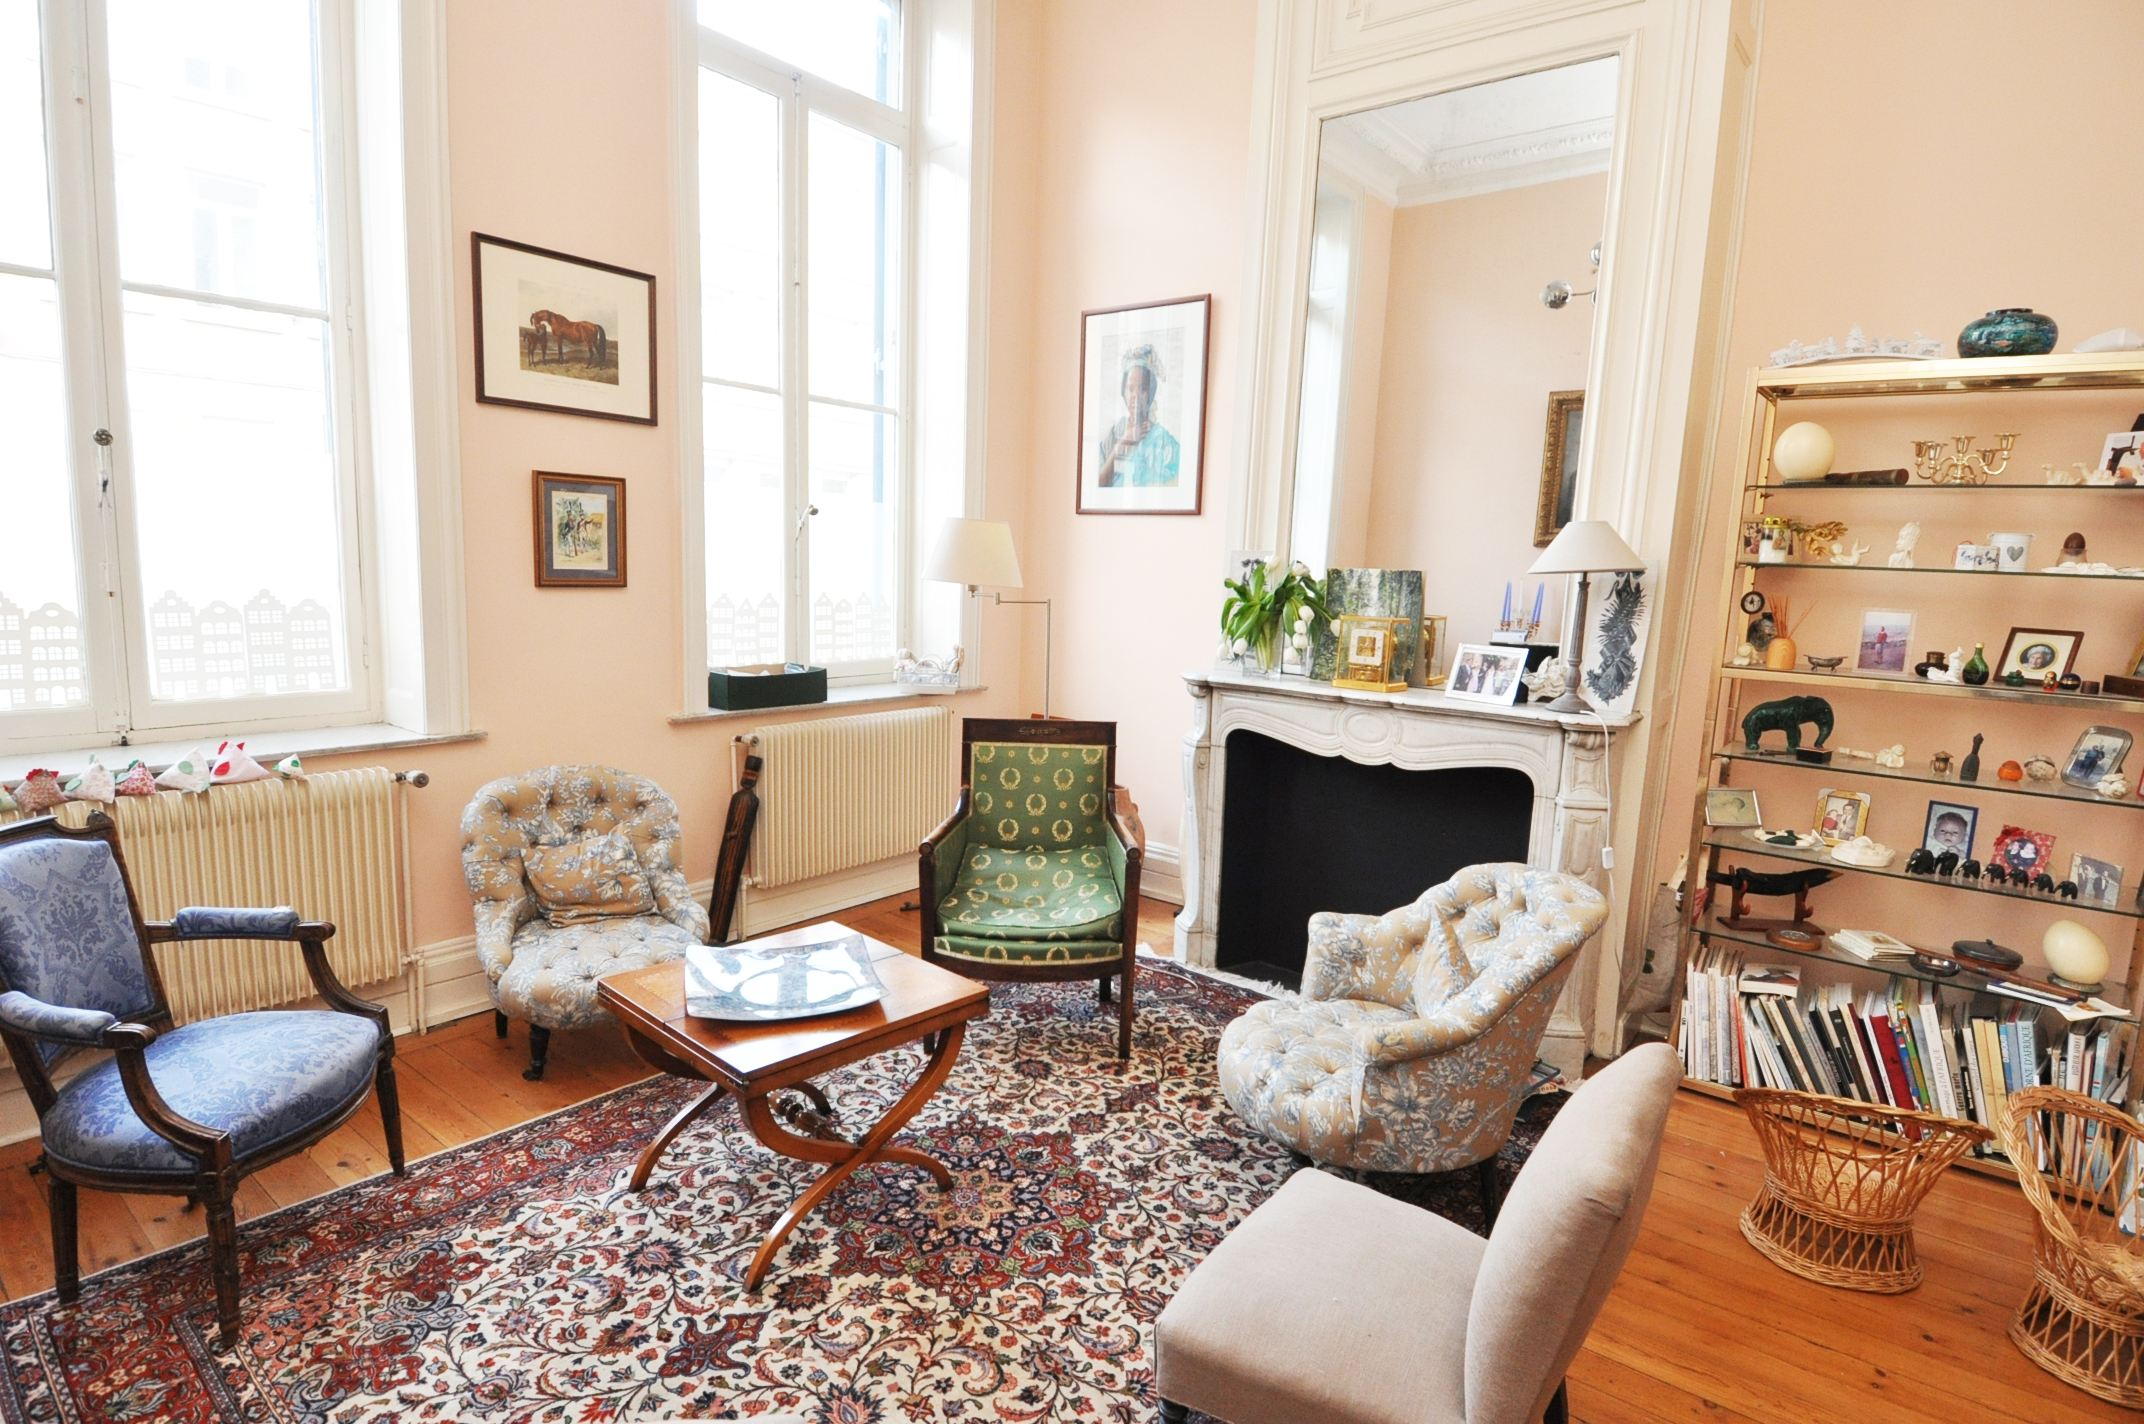 sales property at Central HAUBOURDIN, Pretty 240sqm bourgeois house with 7 bedrooms.